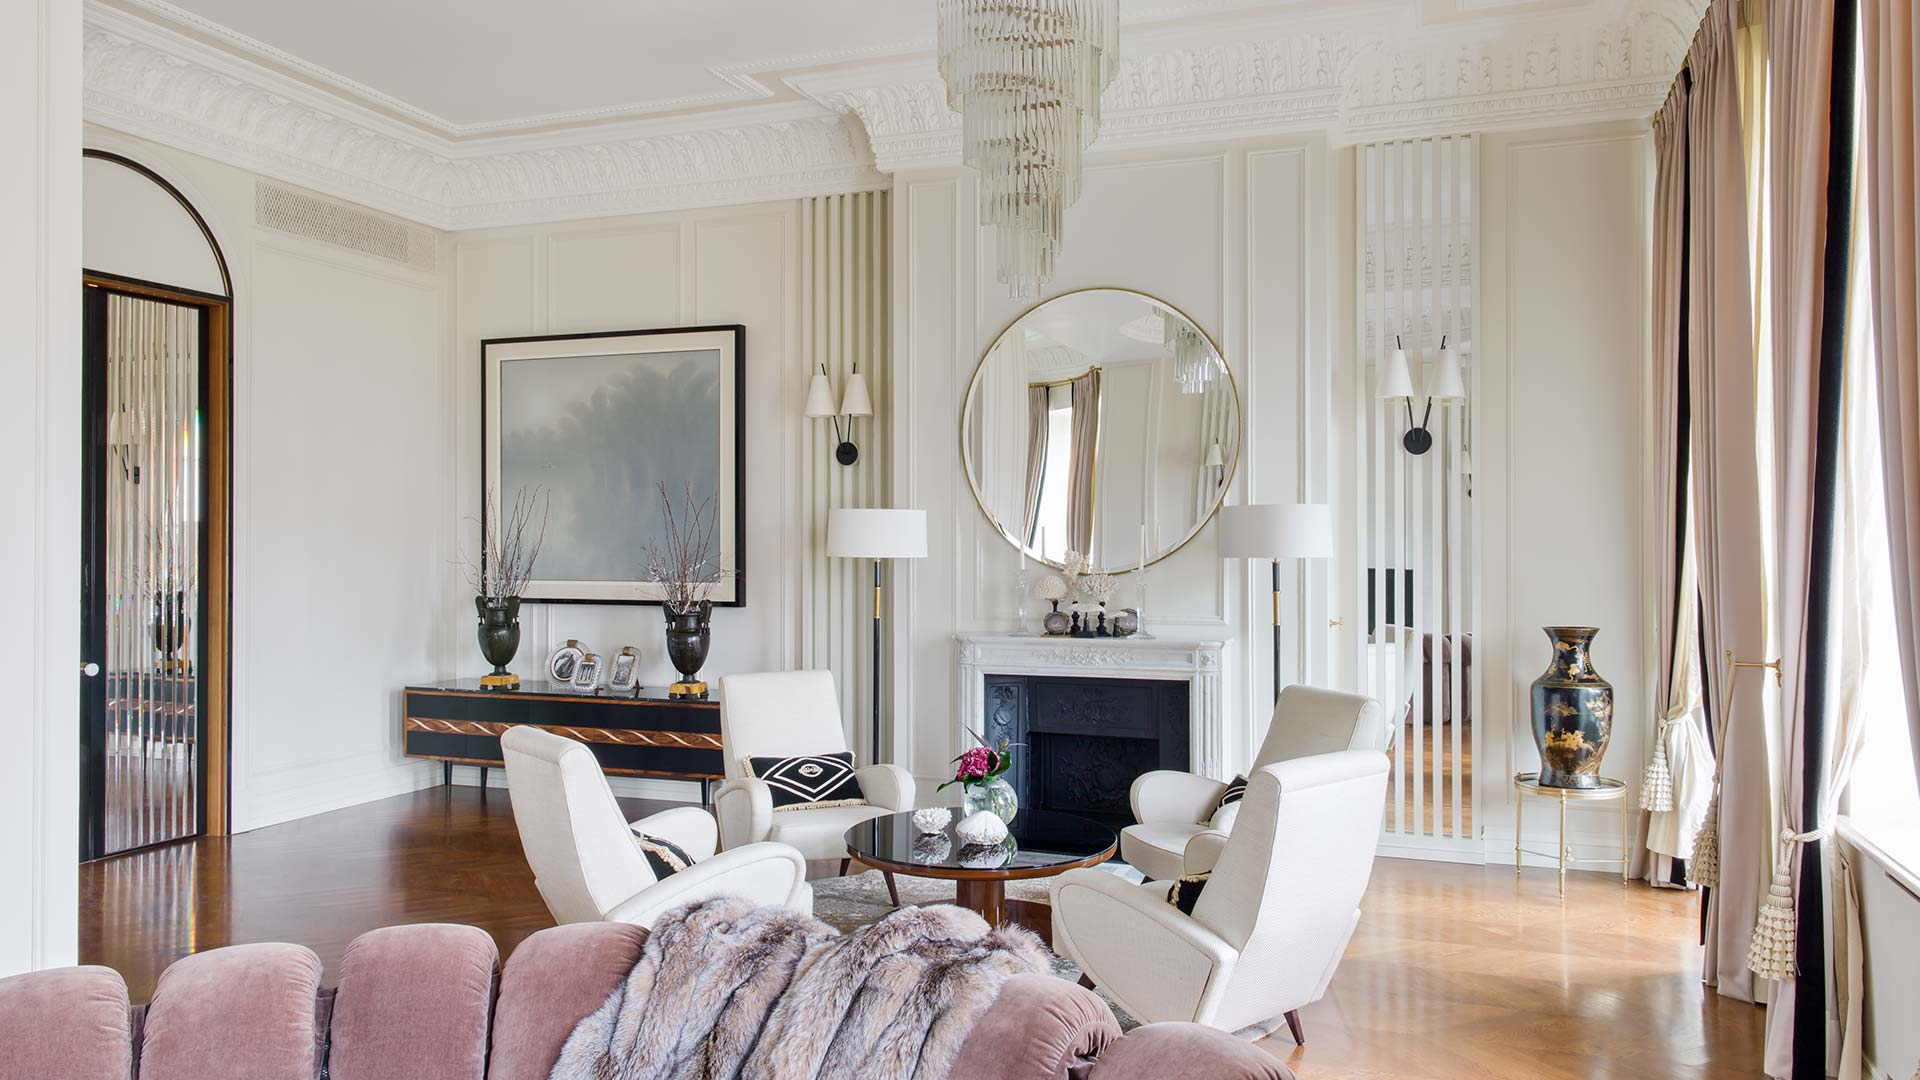 Das Beste This Art Deco Inspired Apartment In Moscow Serves As An In Diesem Monat